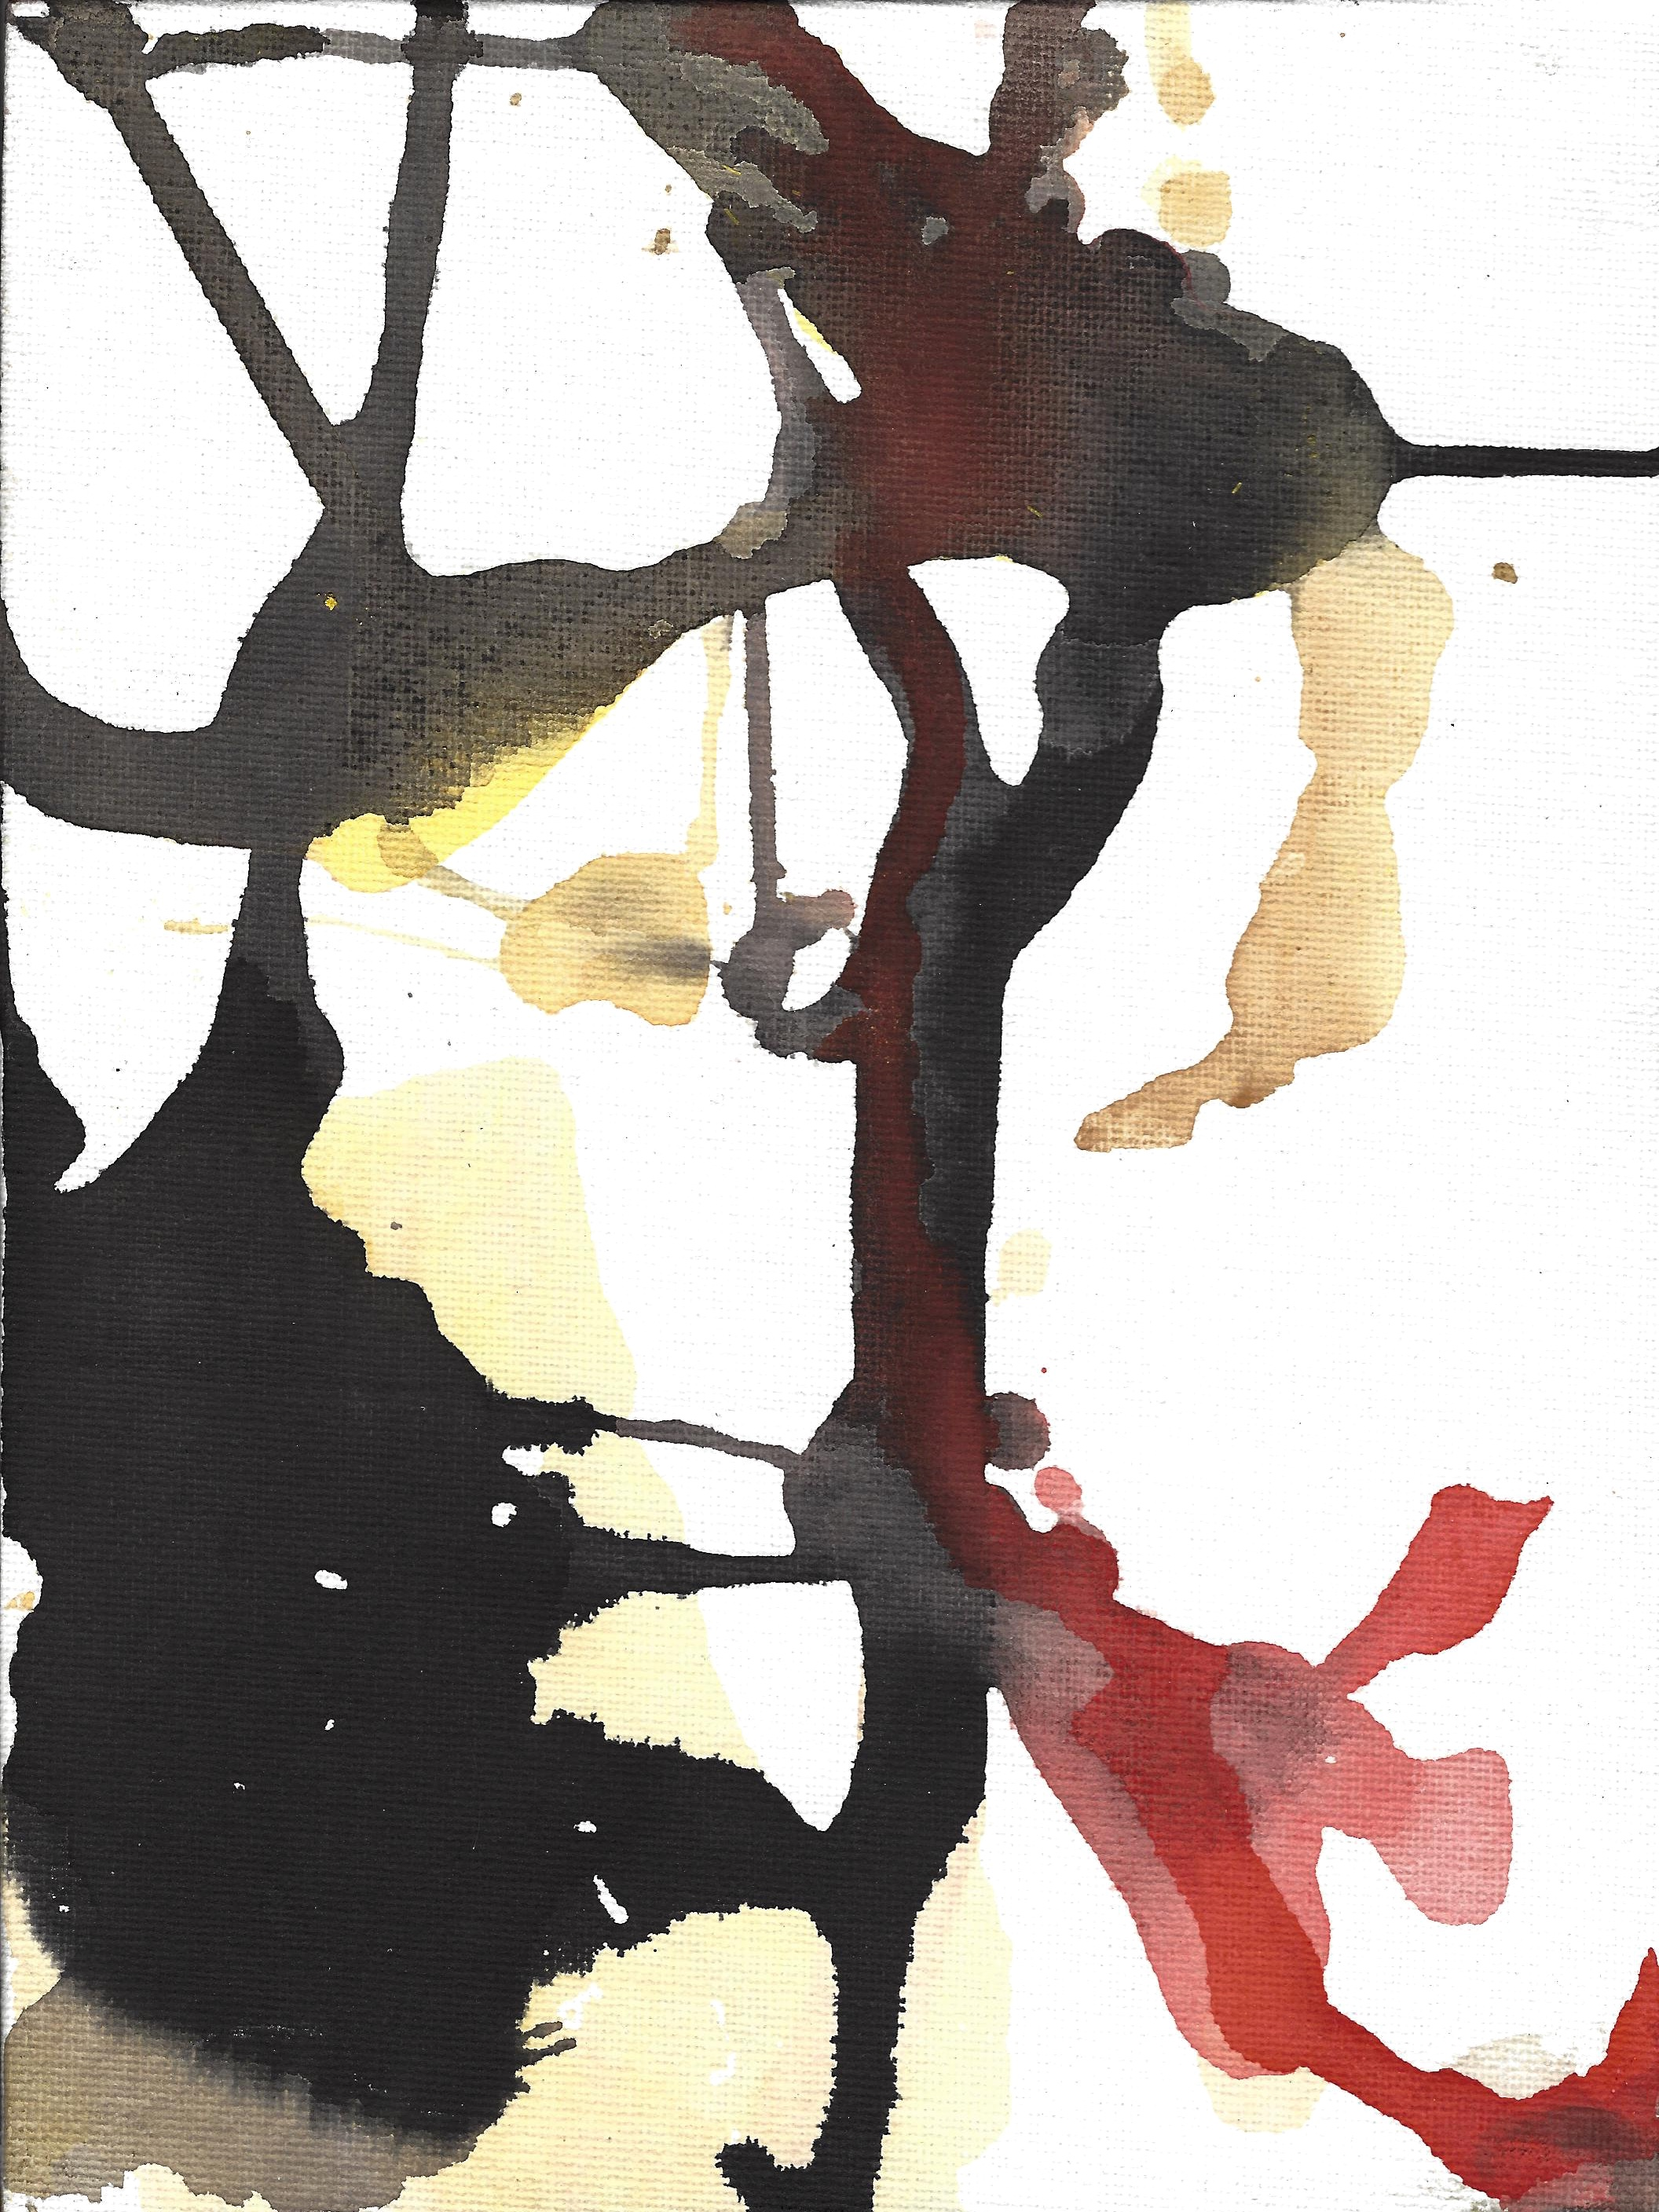 Watercolour #9 Untitled 2015